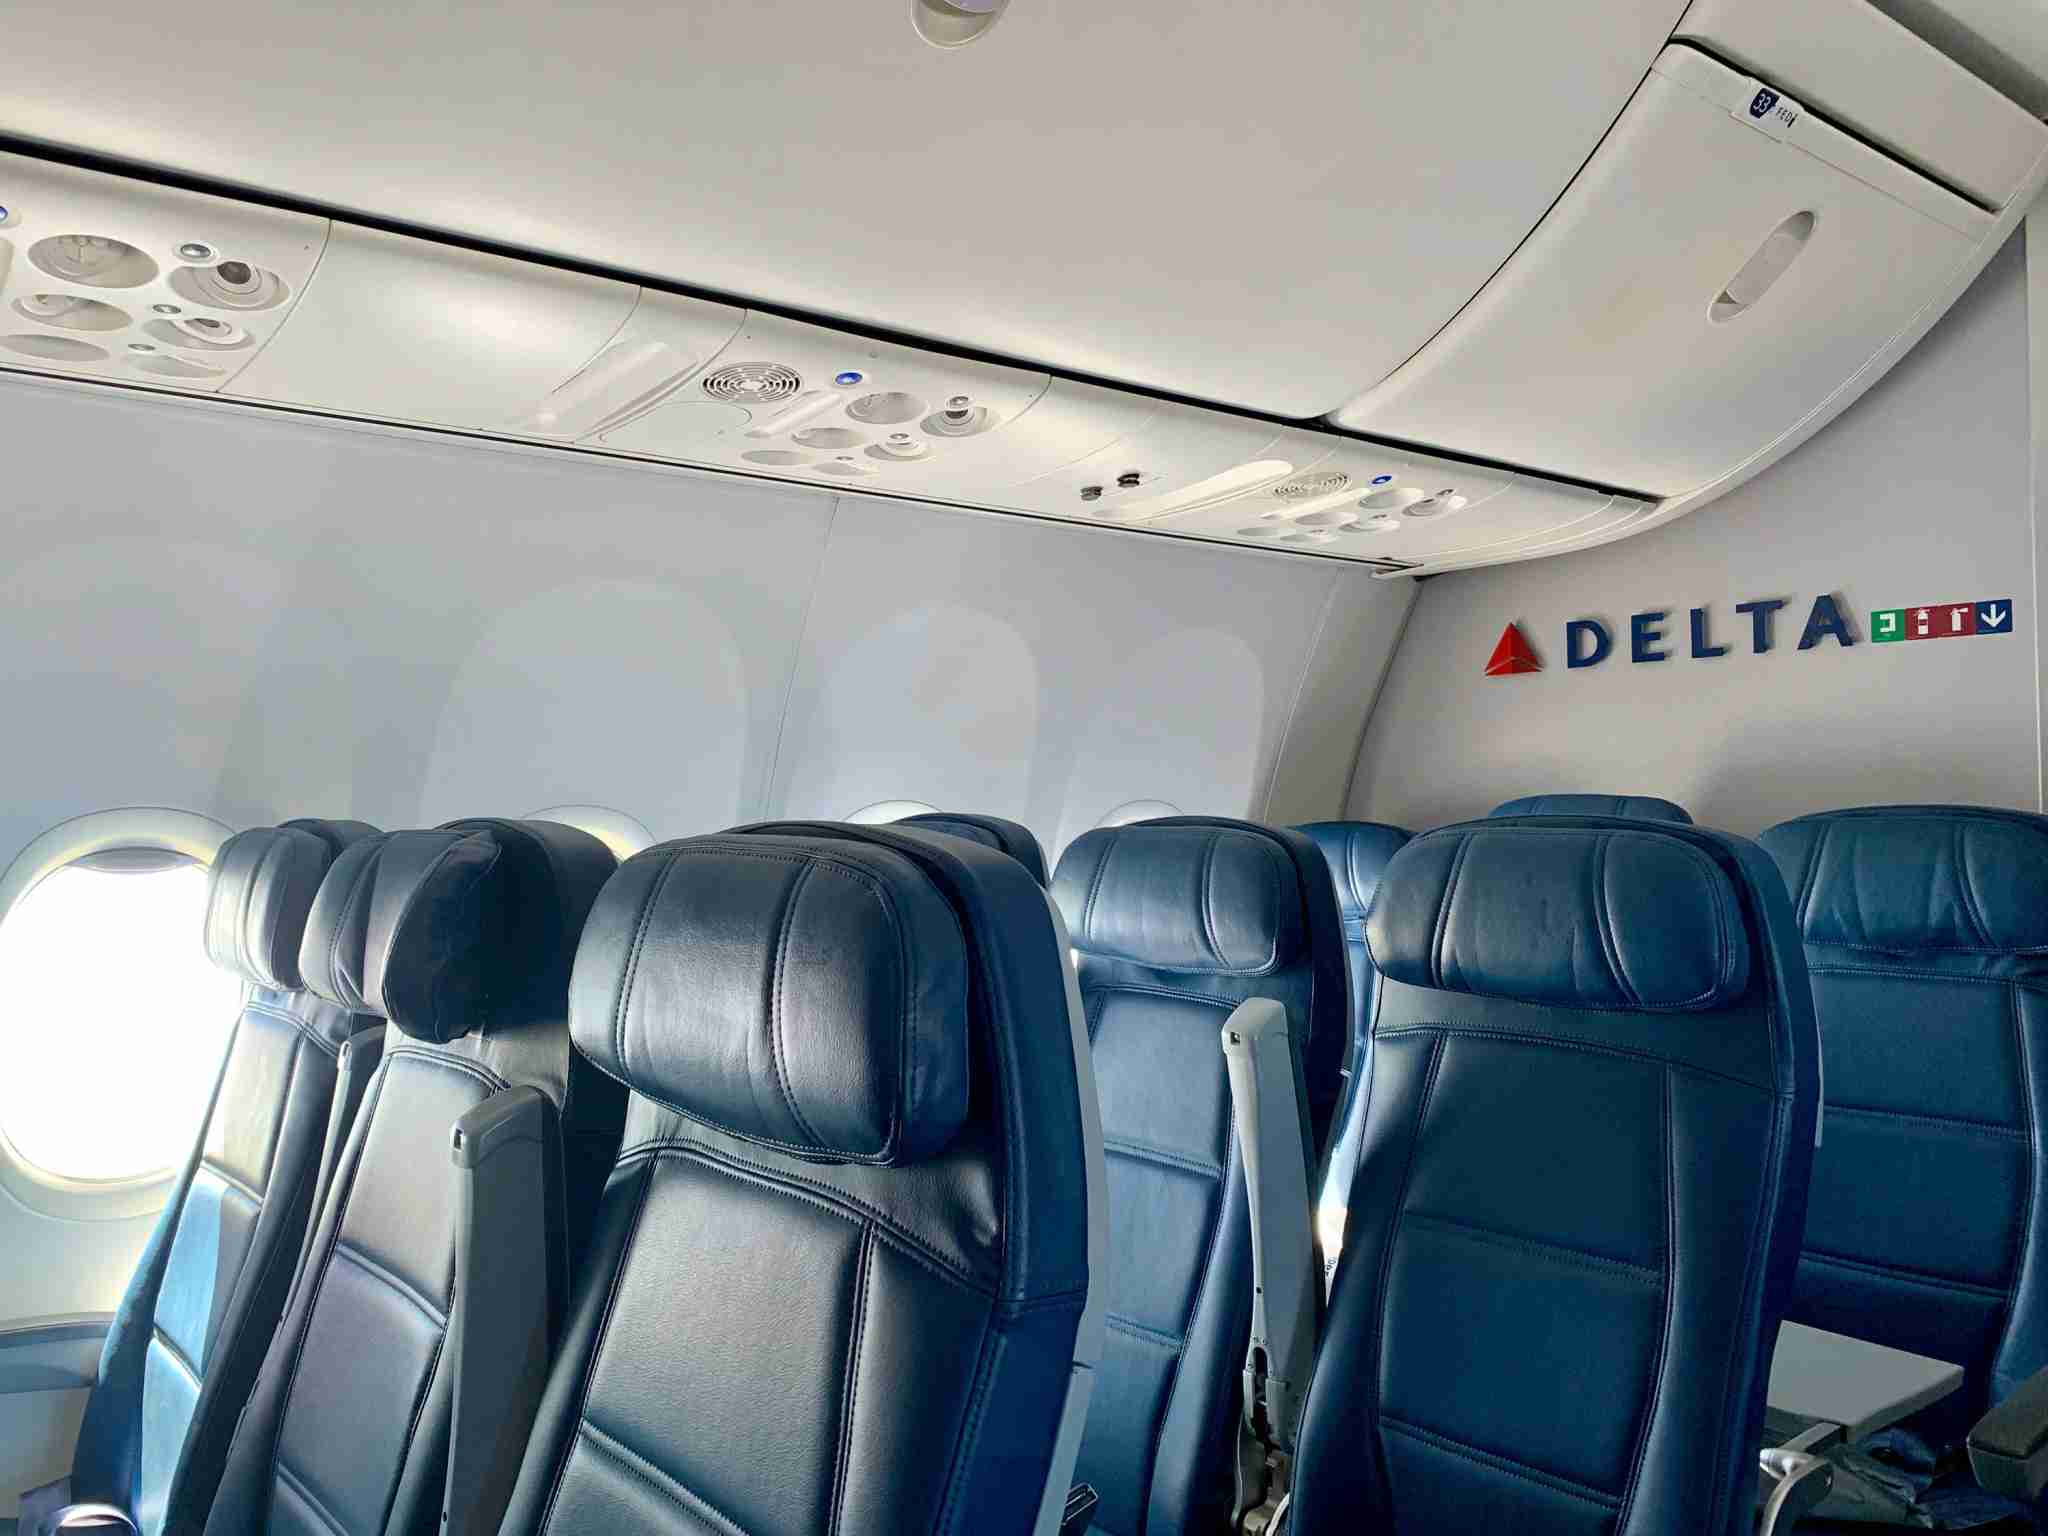 delta-back-rear-economy-main-cabin-seat-seating-airplane-cabin